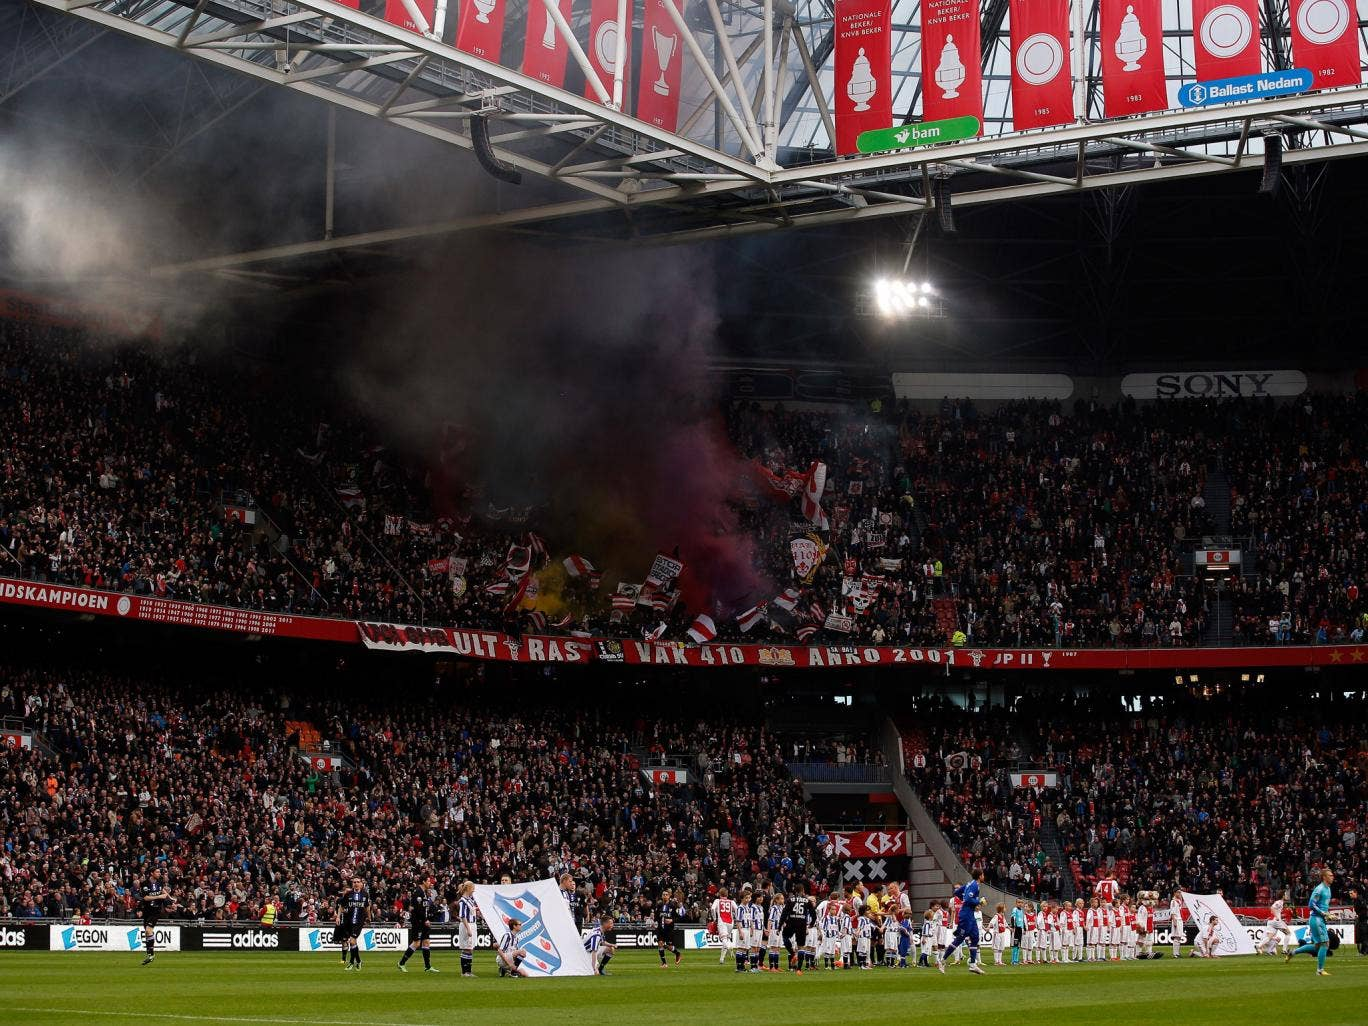 Ajax fans at the Amsterdam ArenA